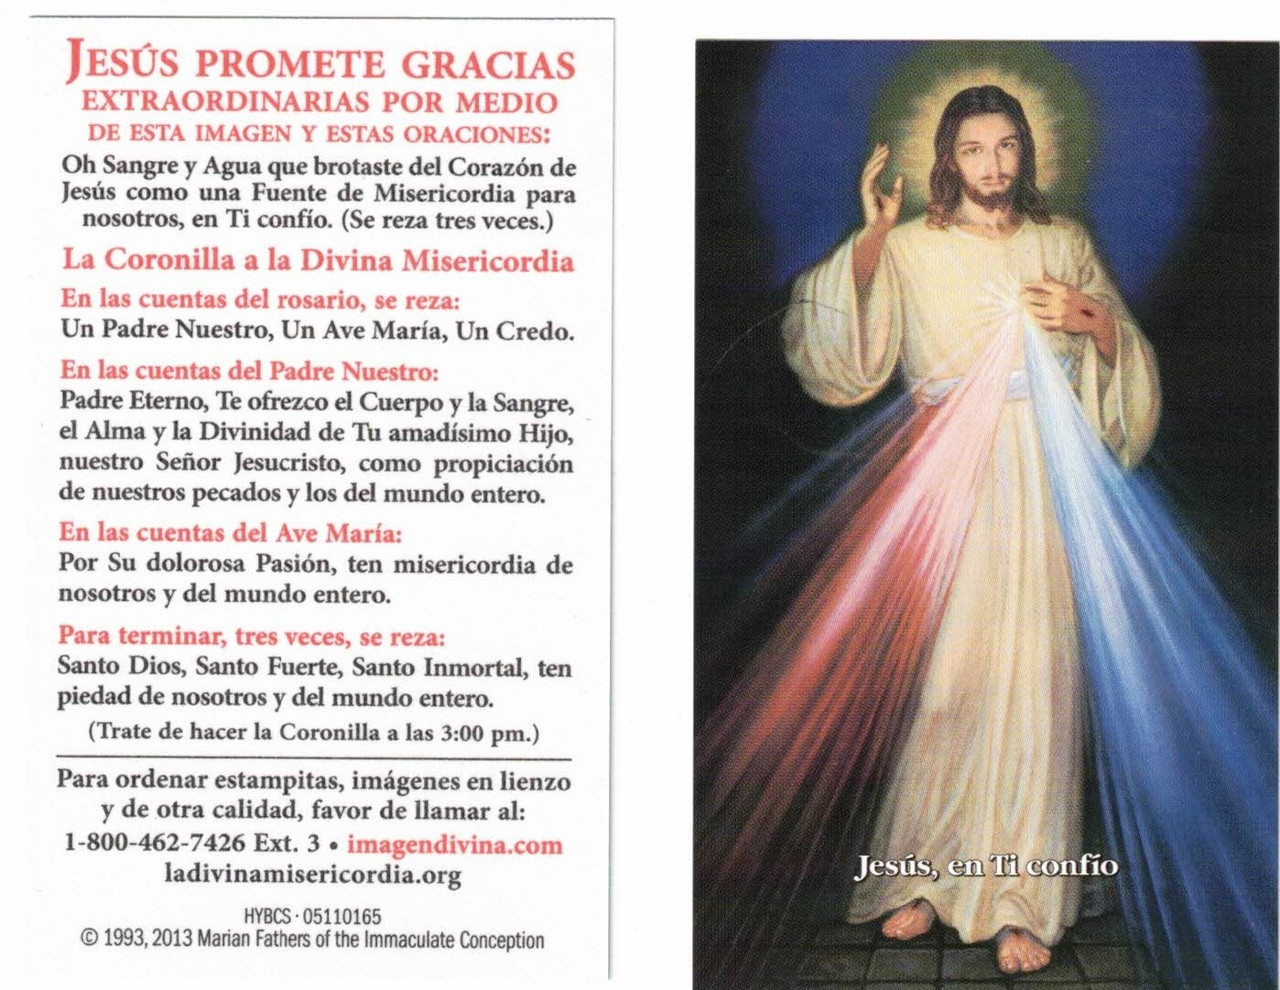 Divine Mercy Chaplet with modern Hyla Image, Spanish blue background, inexpensive prayer card